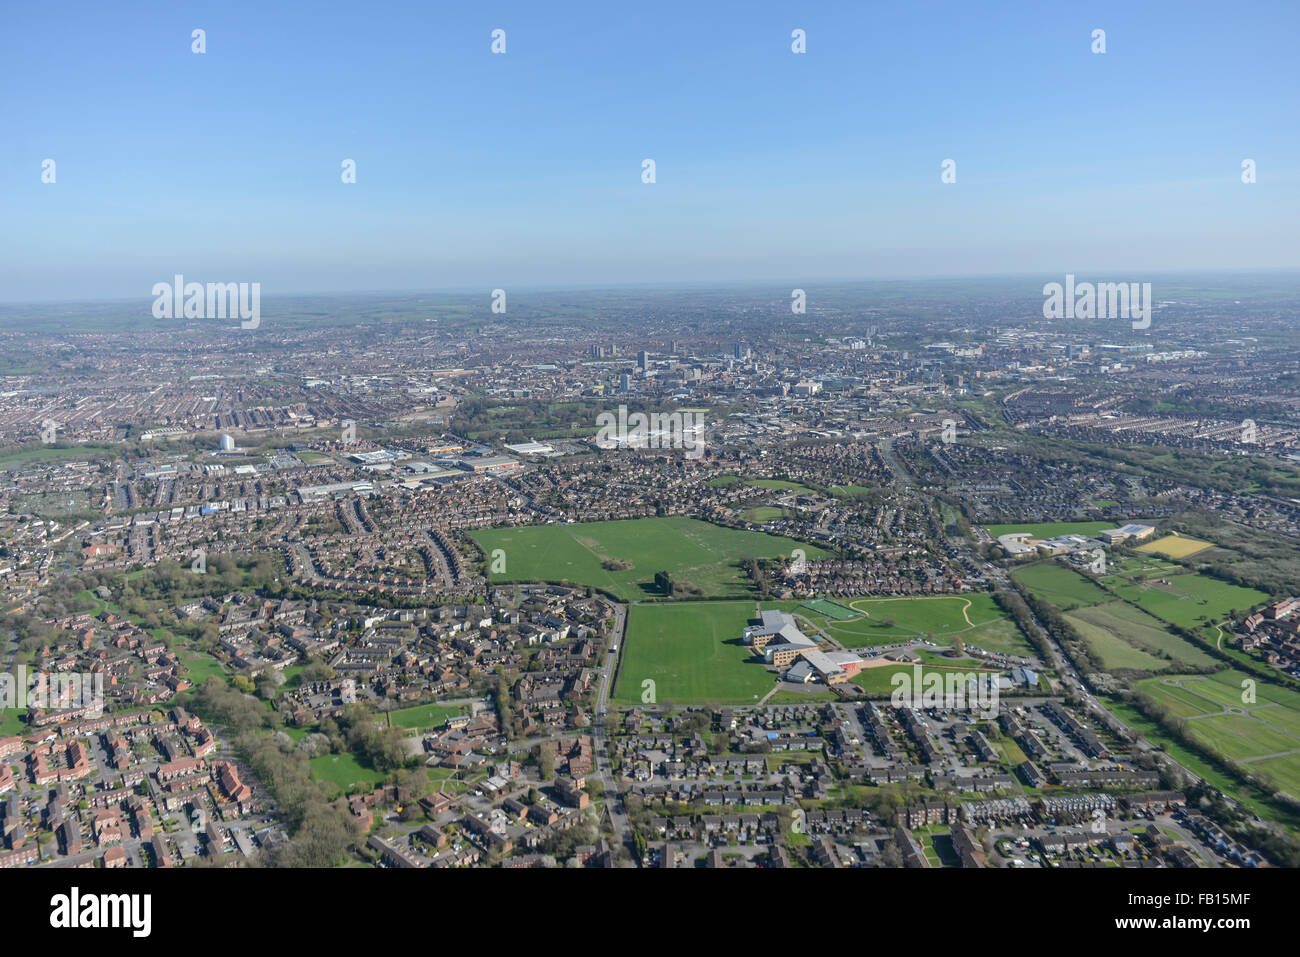 General aerial views over the East Midlands city of Leicester on a bright sunny day - Stock Image